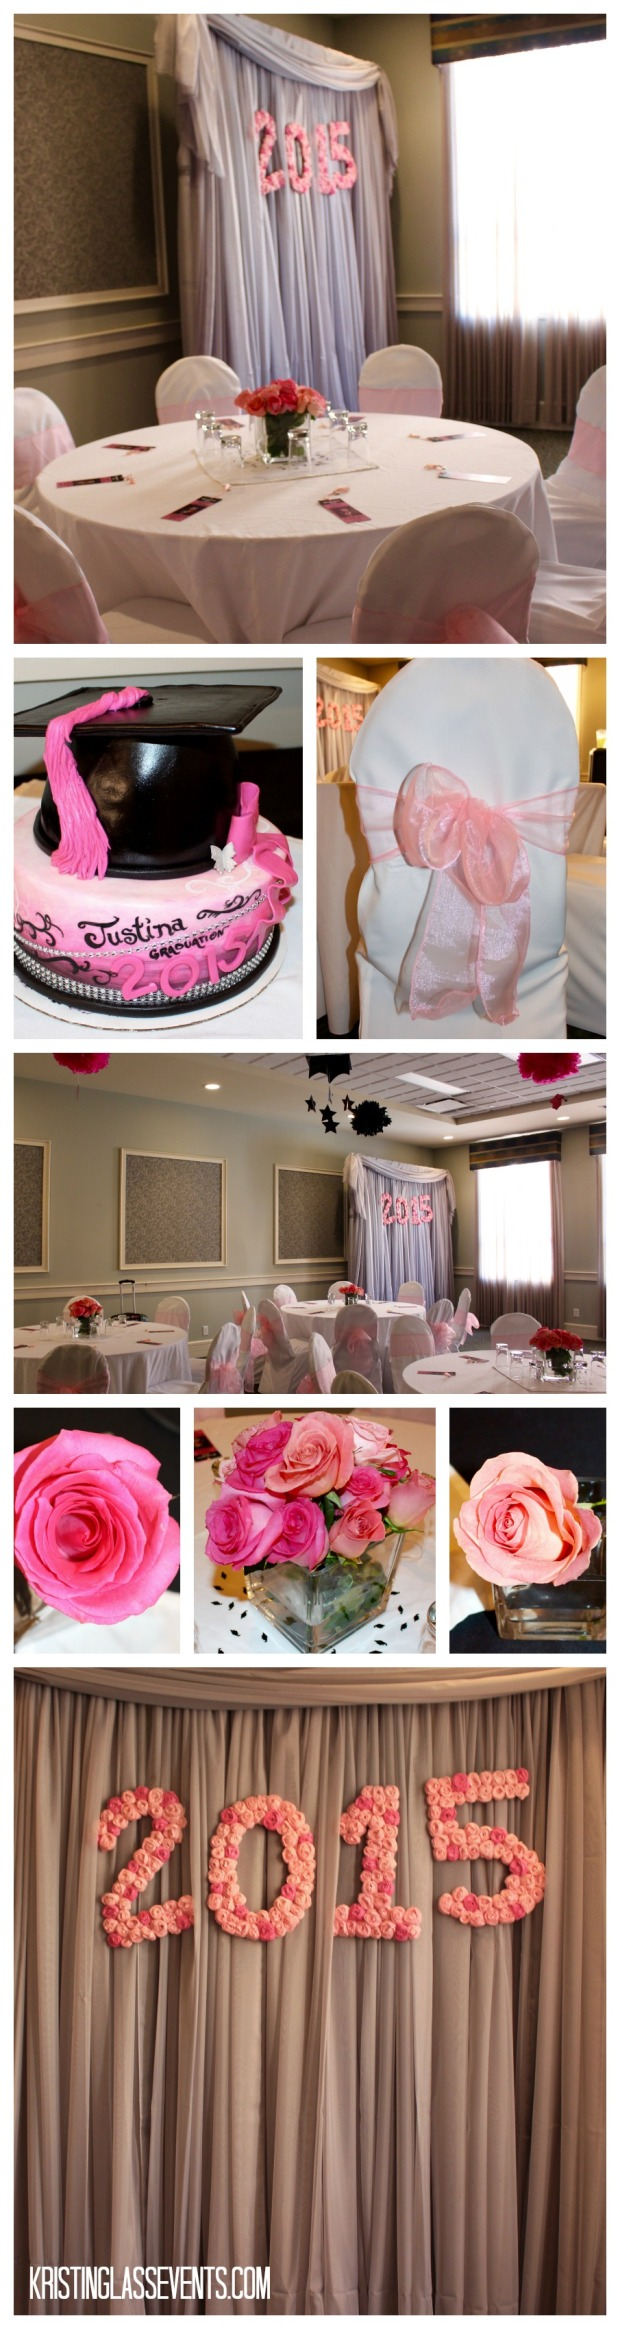 A Pink Graduation Party